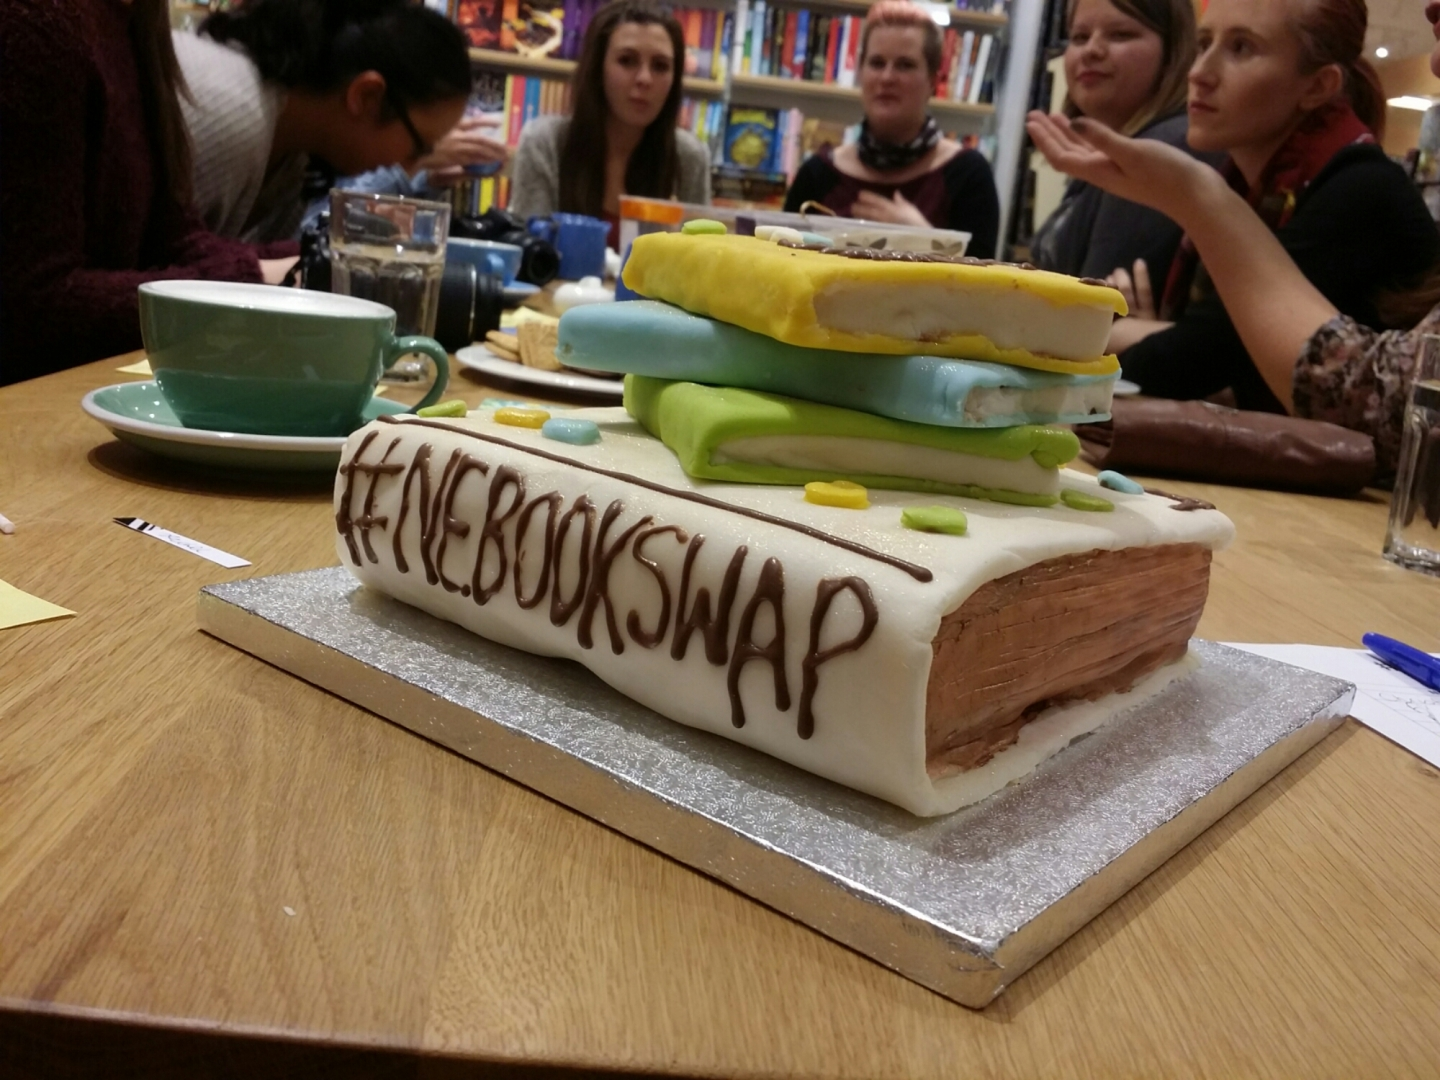 book club nebookswap cake bloggers books waterstones